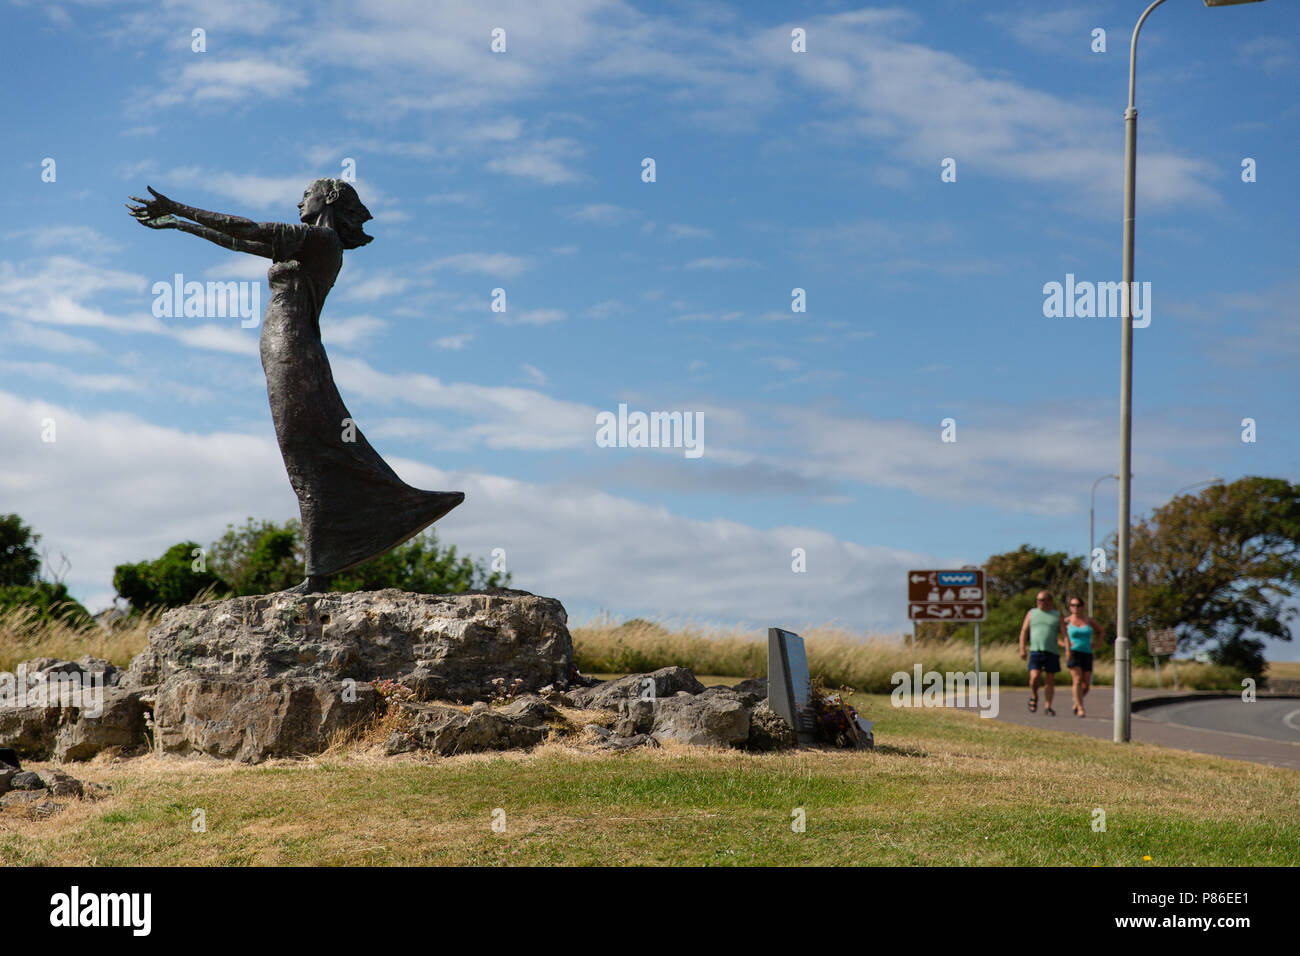 Rosses Point, Sligo, Ireland. 8th July 2018: People enjoying sunny weather making the most out of the record high temperatures heating Ireland having great time on the beach or walking around the beautiful Rosses Point Village in County Sligo Ireland . - Stock Image